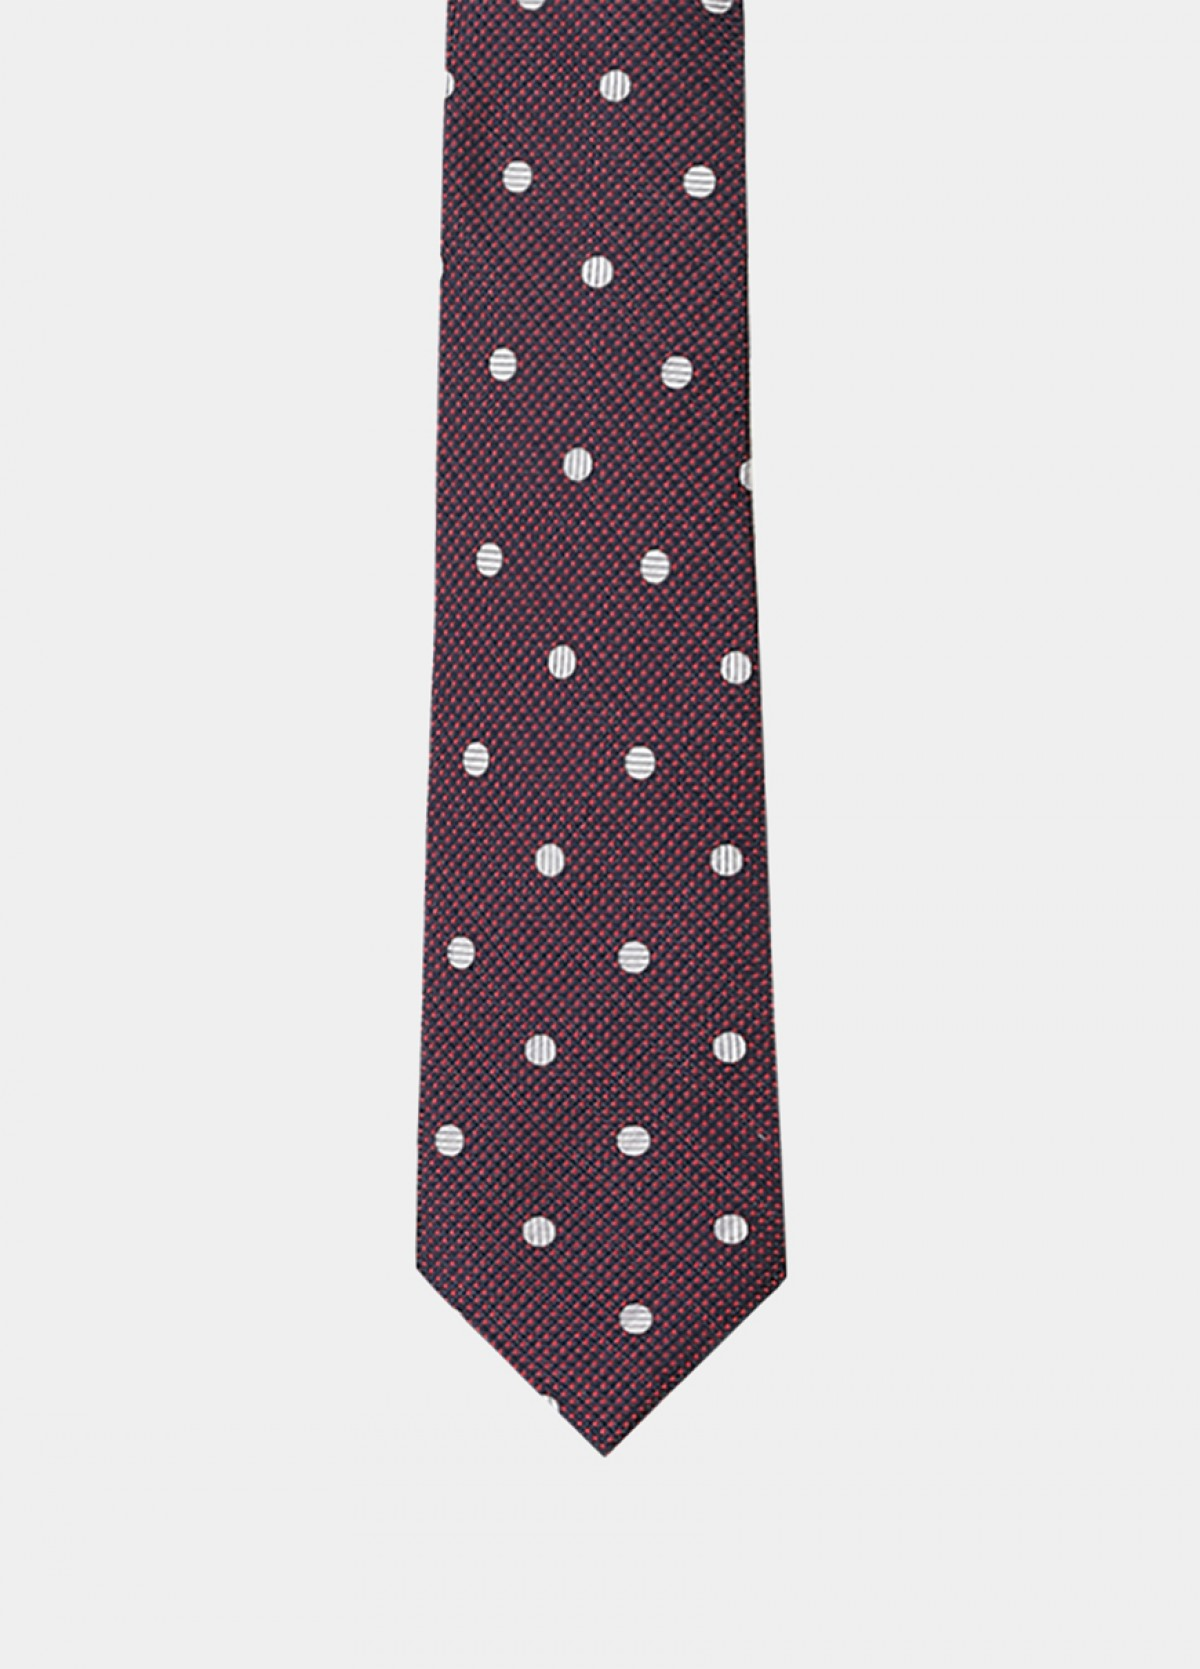 The Red Maroon Stain Resistant Tie